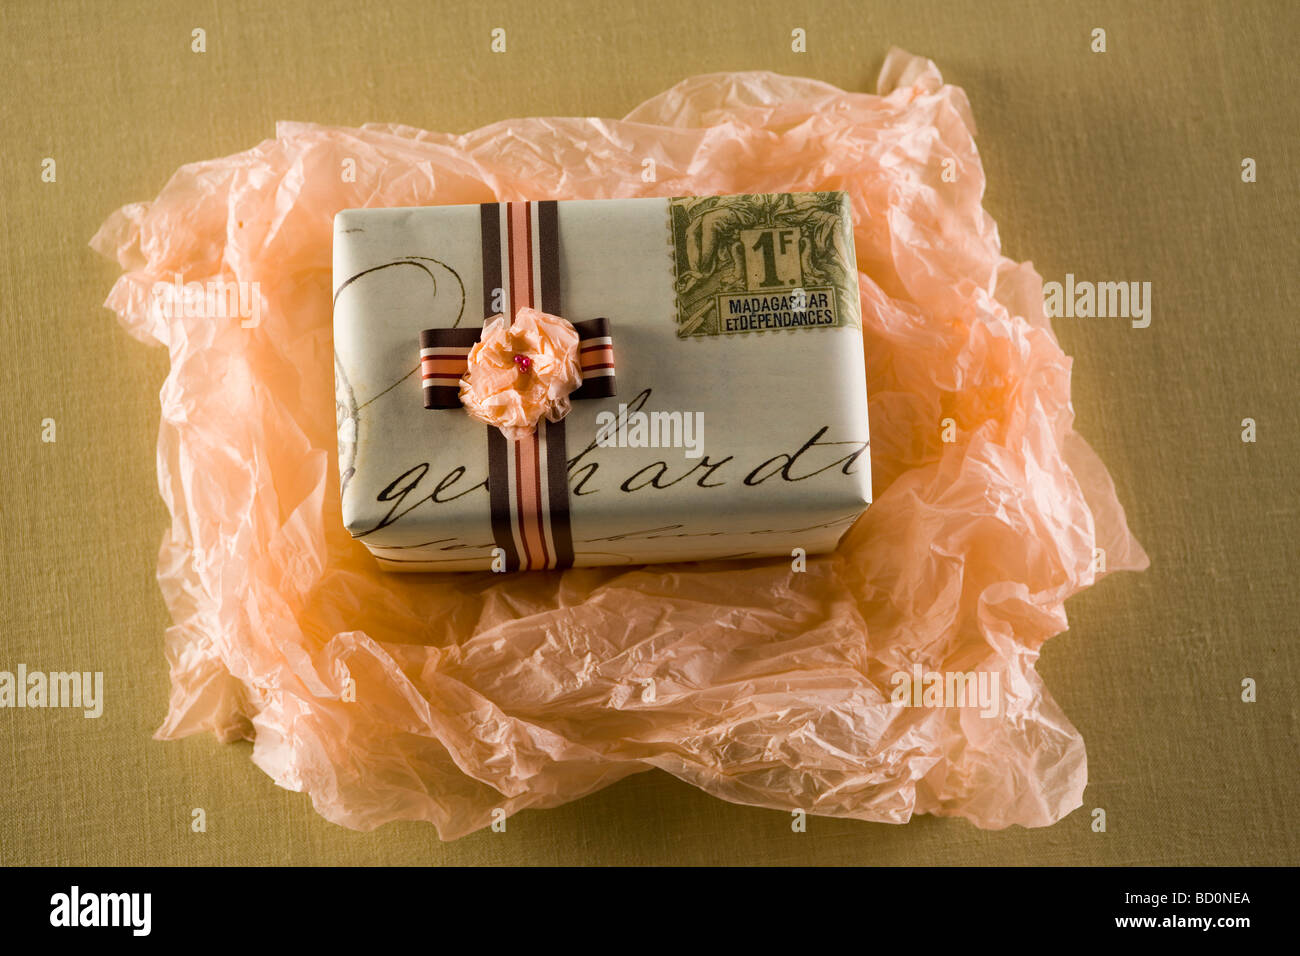 Gift being unwrapped - Stock Image